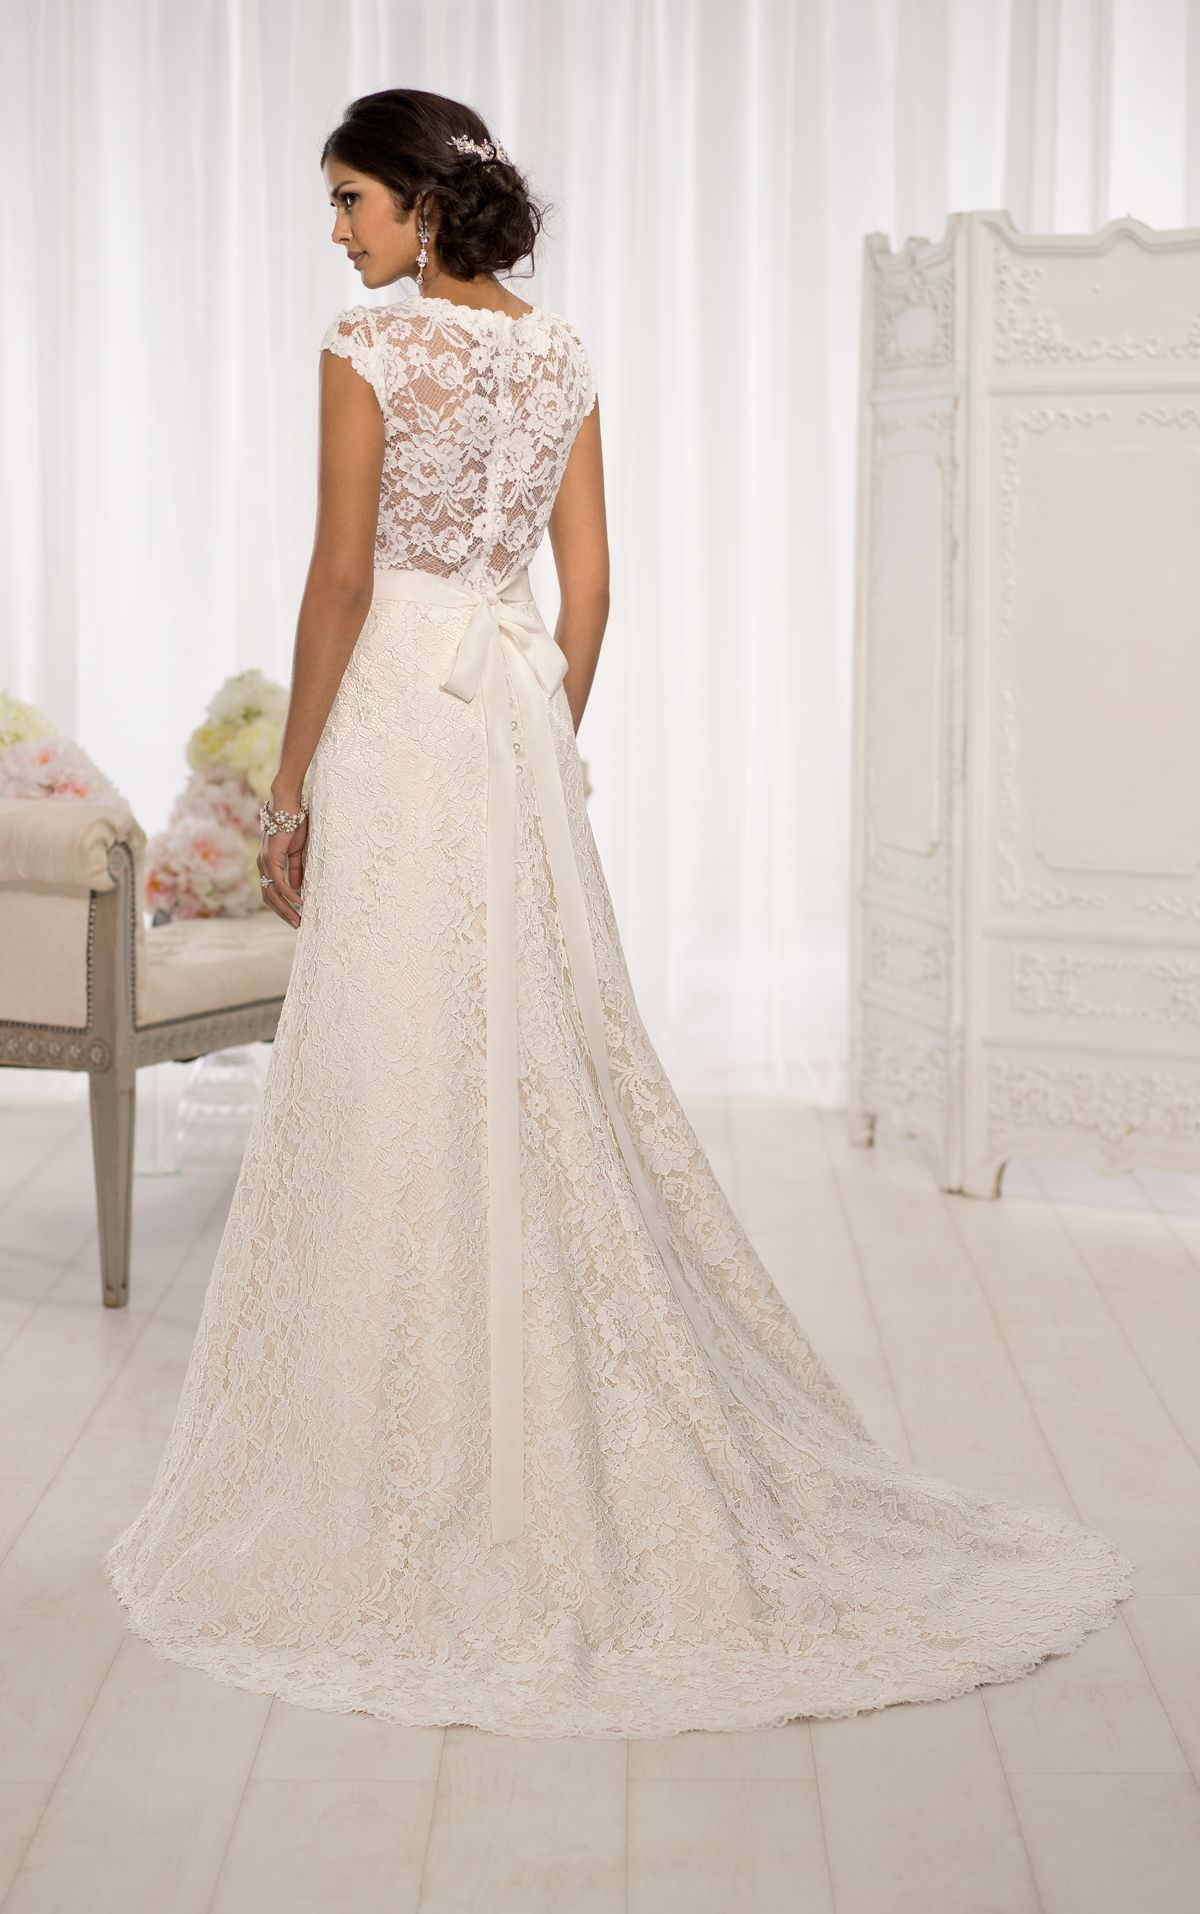 a2c613a1869 Elegant cap sleeve wedding dresses feature a gorgeous Lace over Dolce Satin  A-line silhouette. Exclusive designer cap sleeve wedding dresses by Essense  of ...